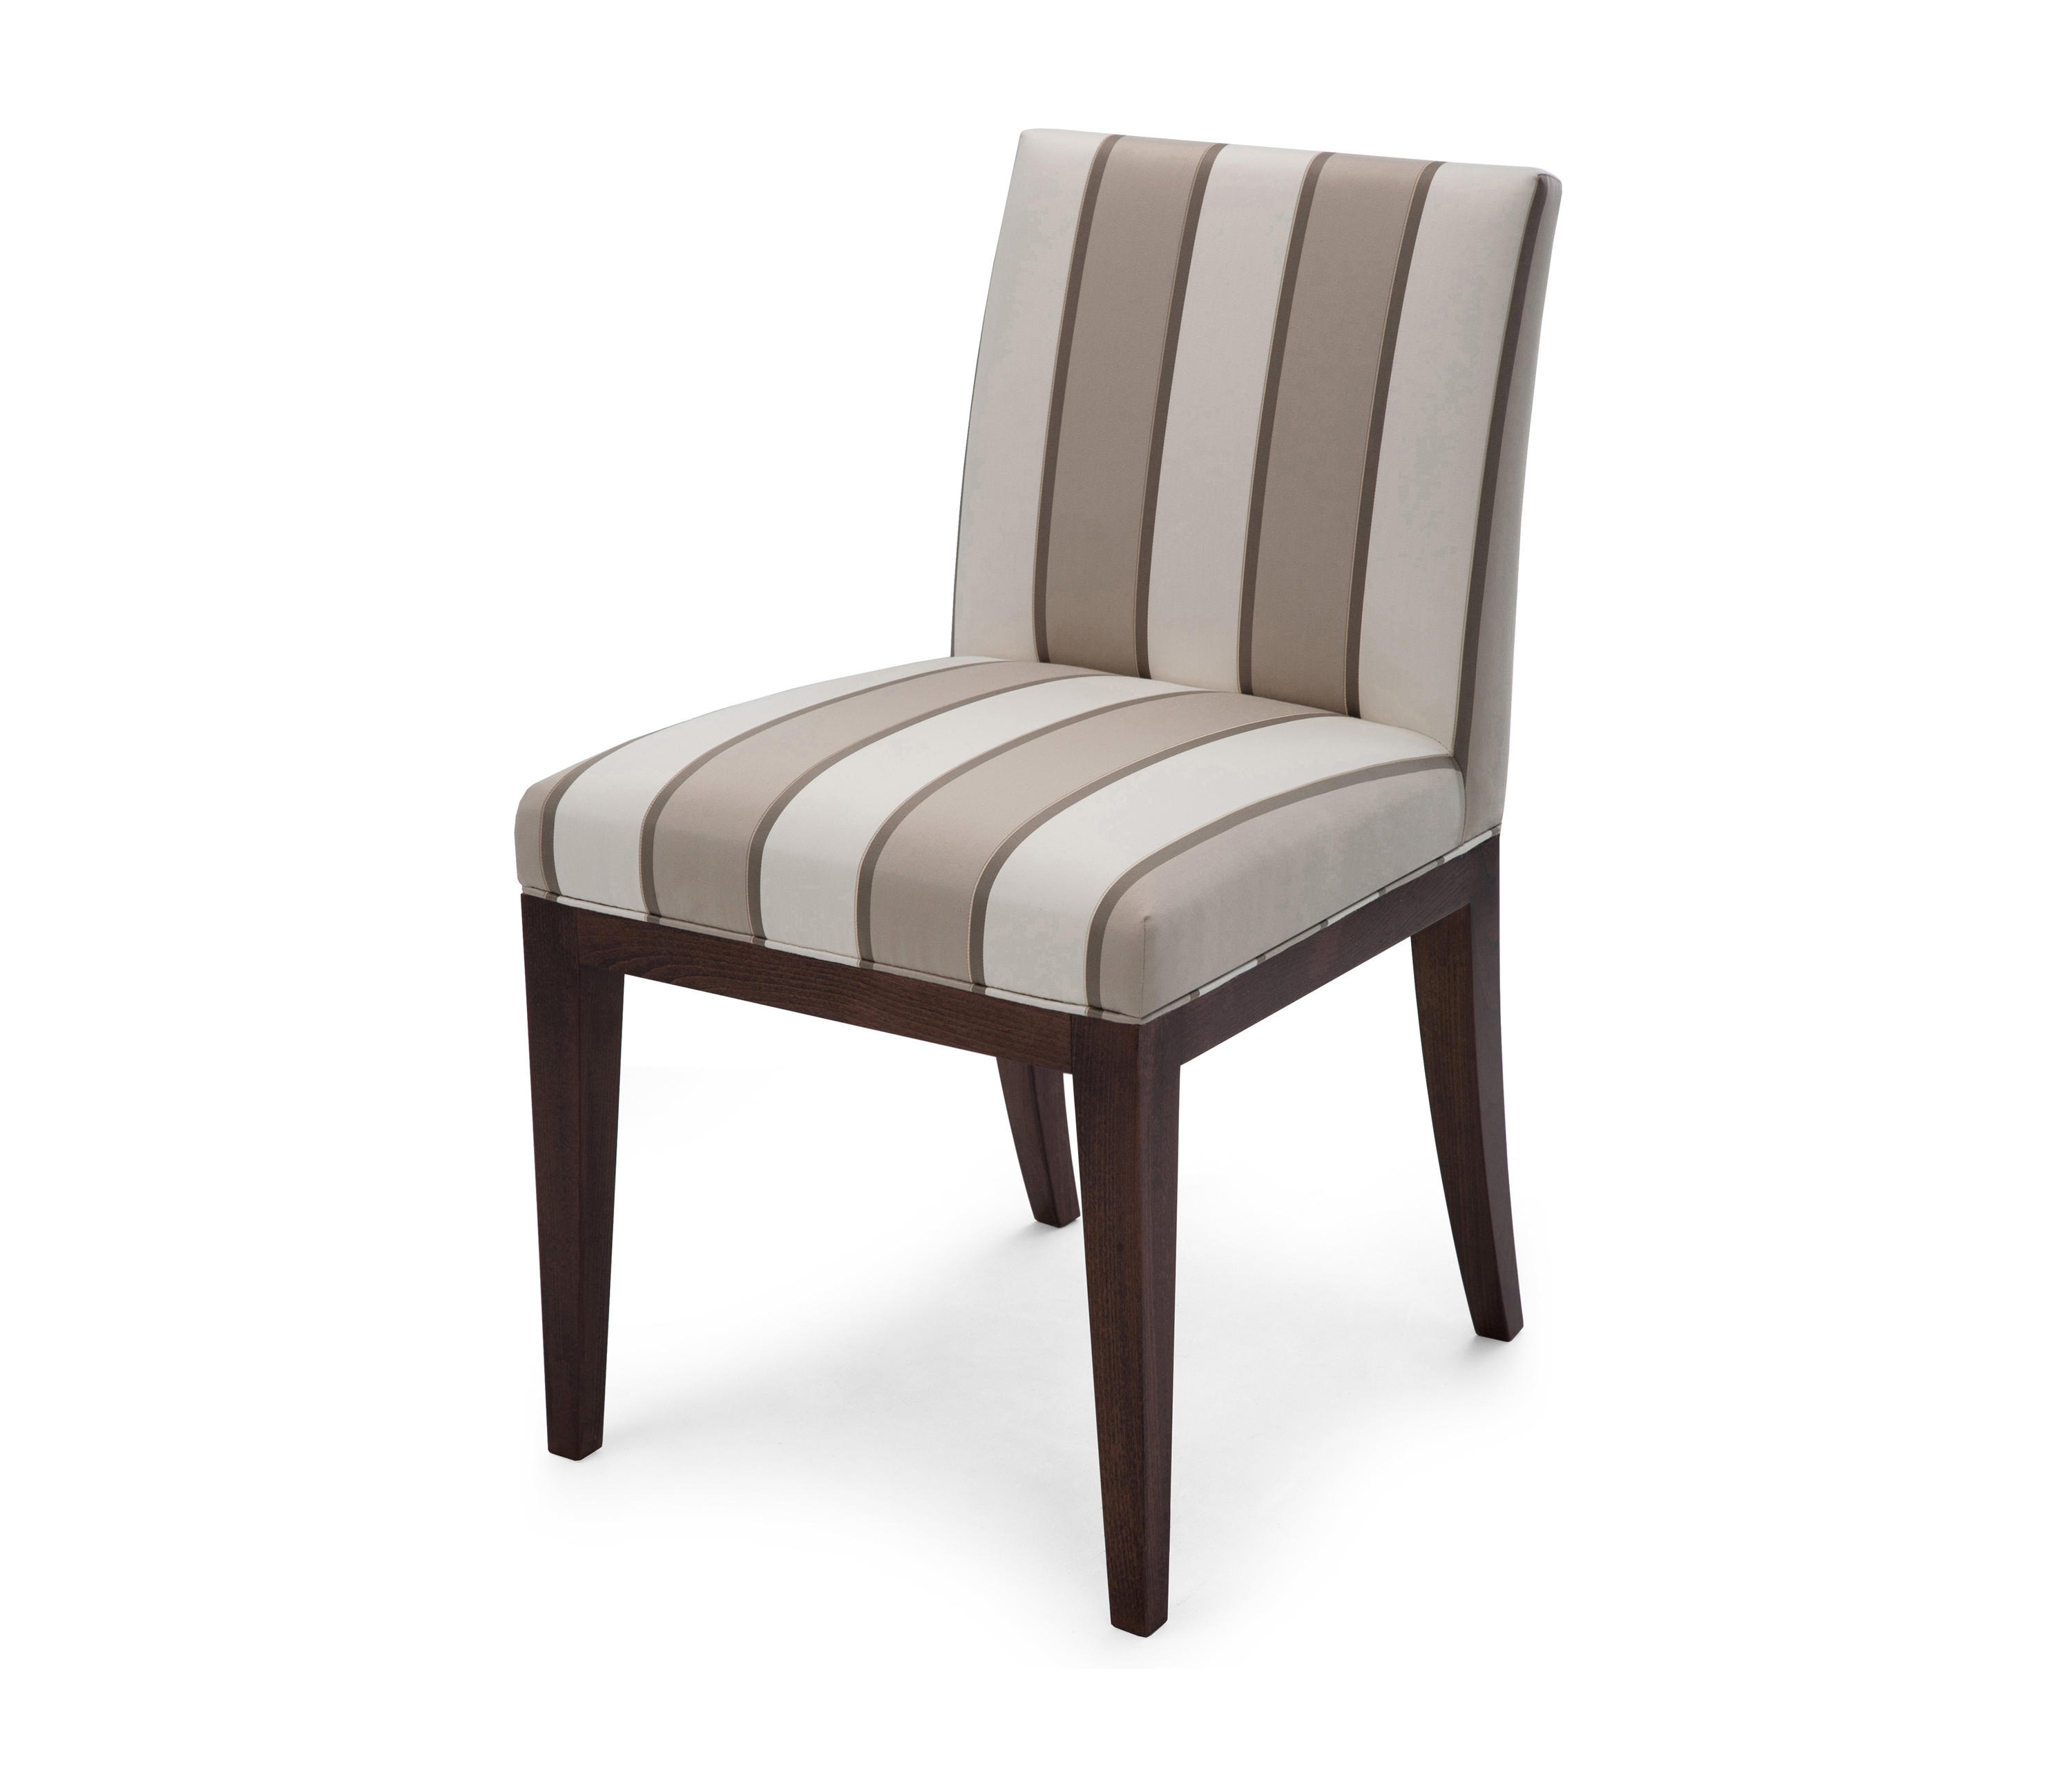 Byron Dining Chair By The Sofa Company Ltd Chairs